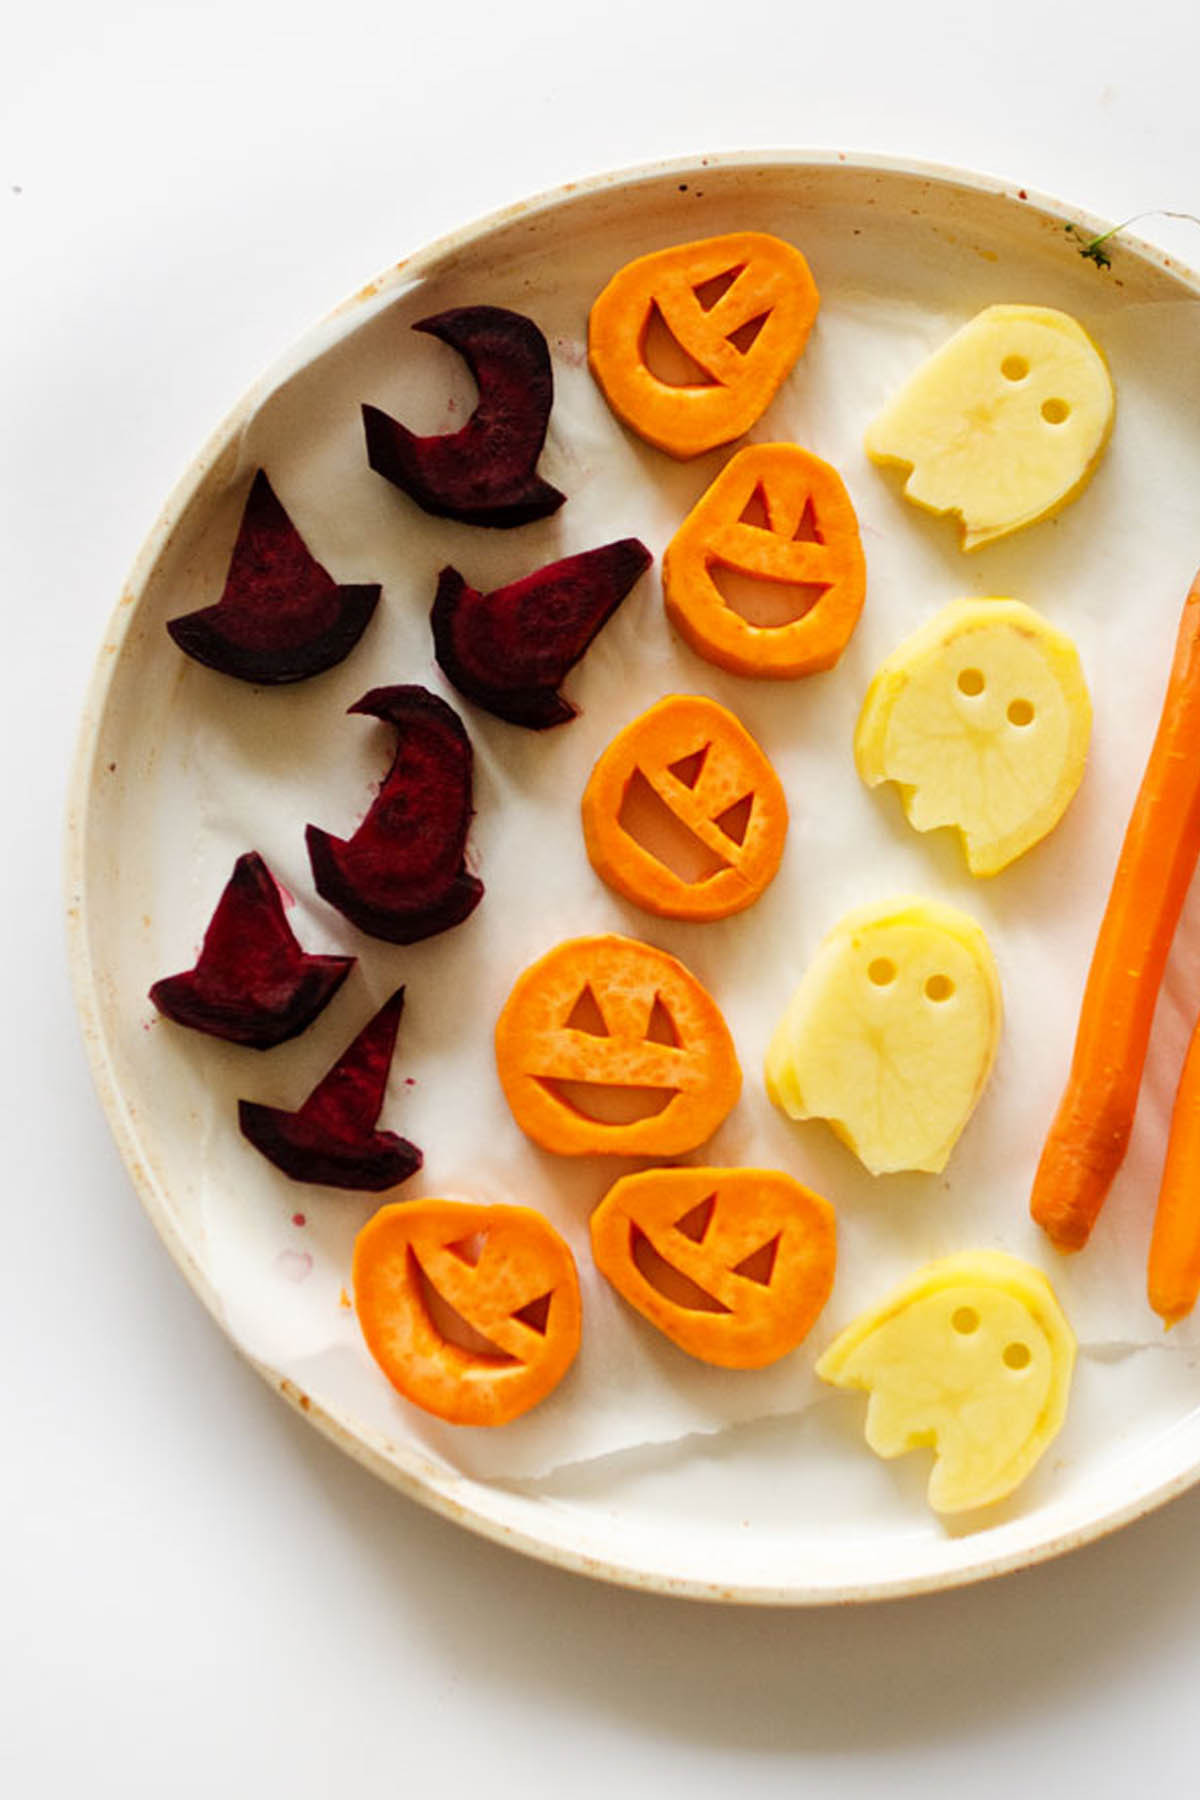 Halloween Dinner Recipes With Pictures  25 Spooky Halloween Dinner Ideas Best Recipes for